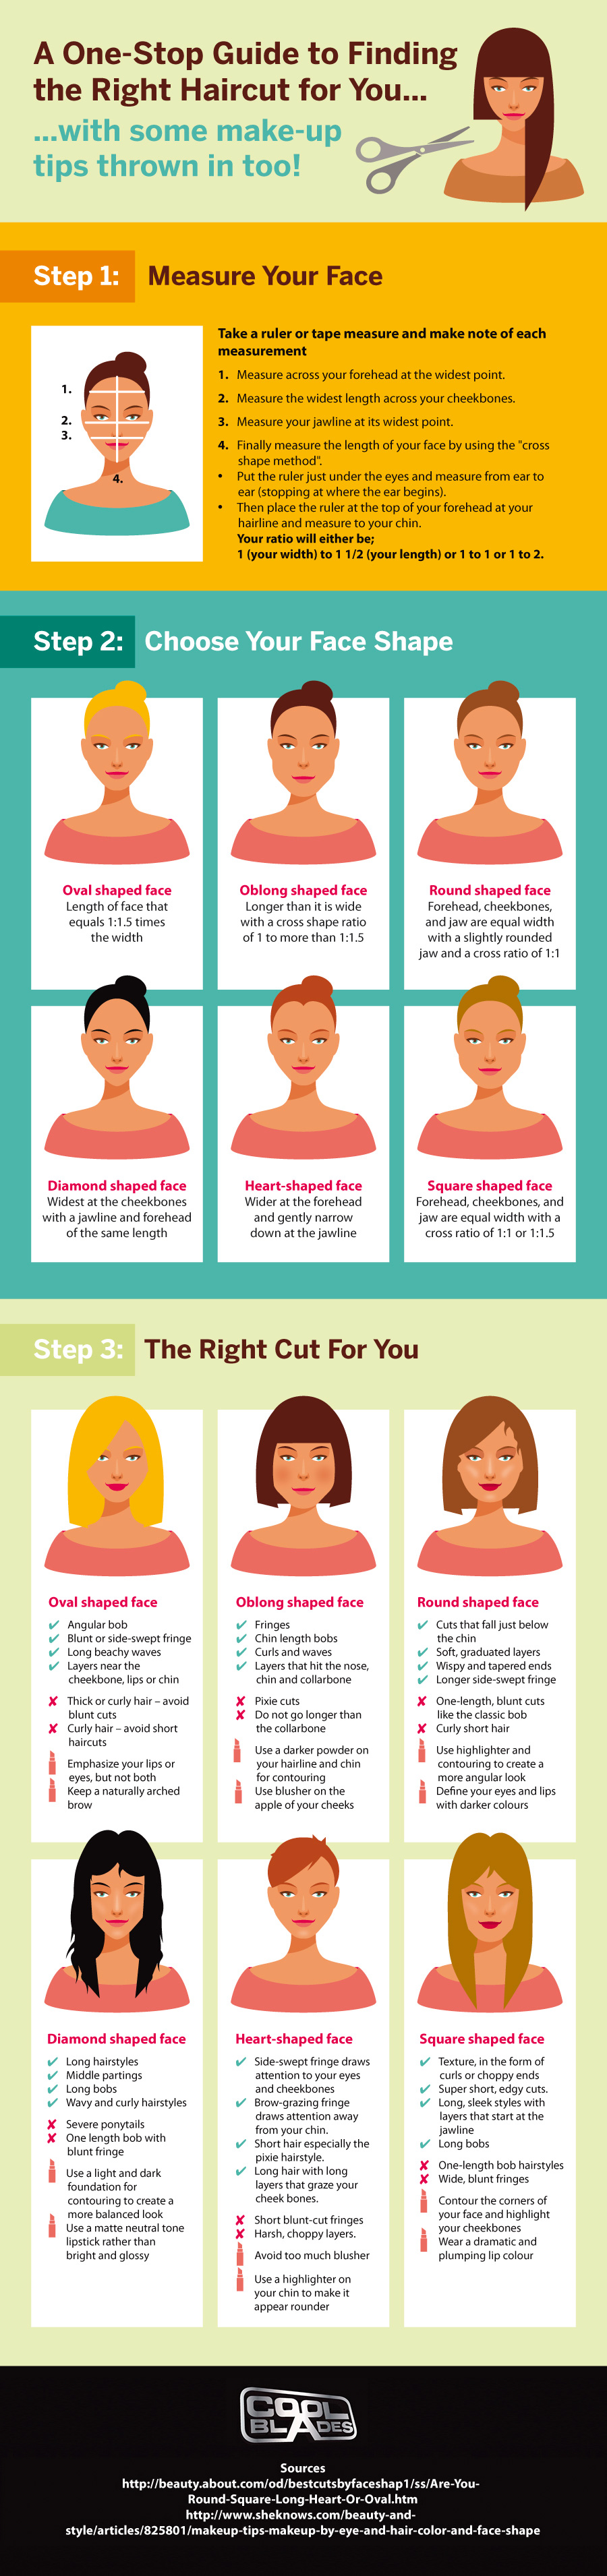 The One-Stop Guide to Finding the Right Haircut for You